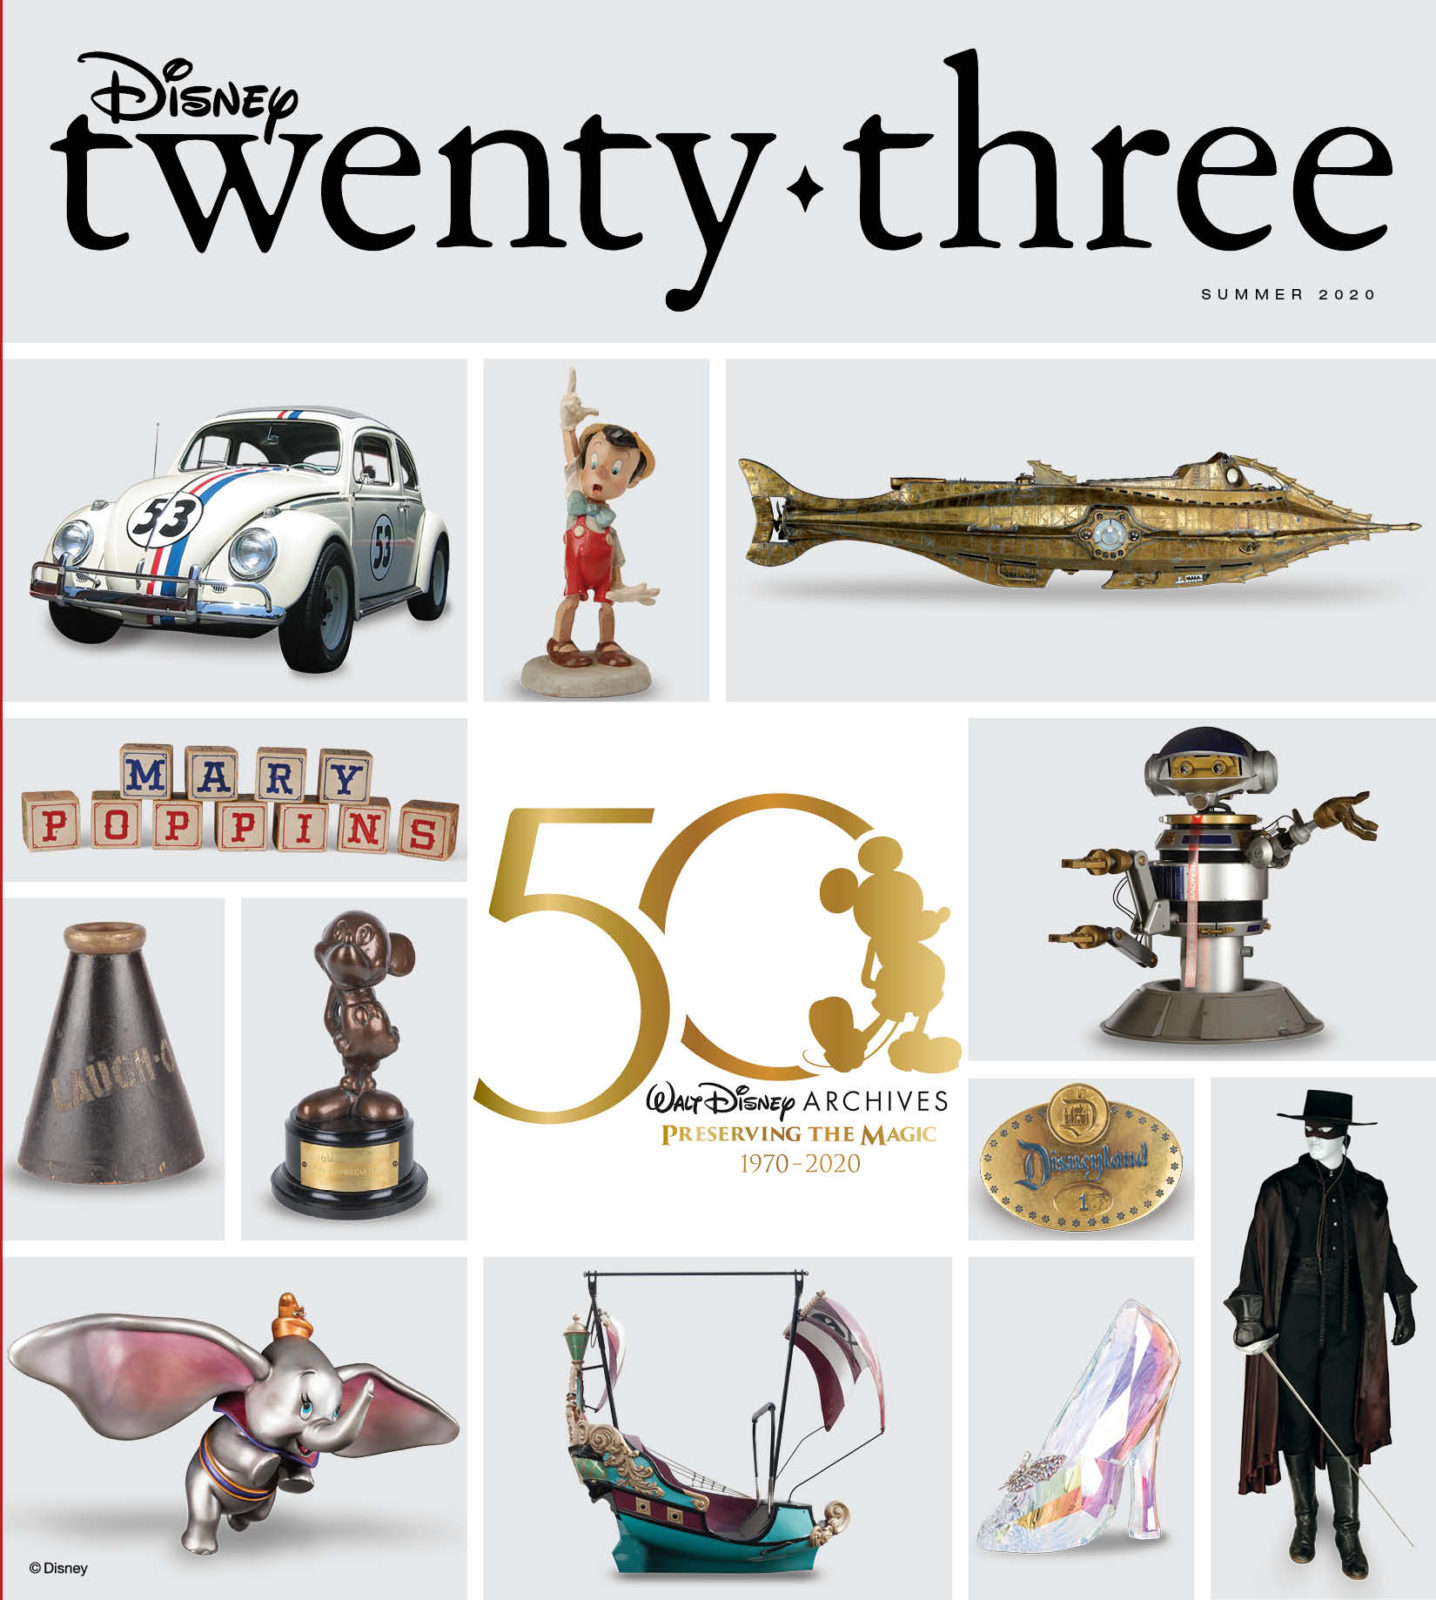 Disney twenty-three magazine June 2020 Cover Walt Disney Archives